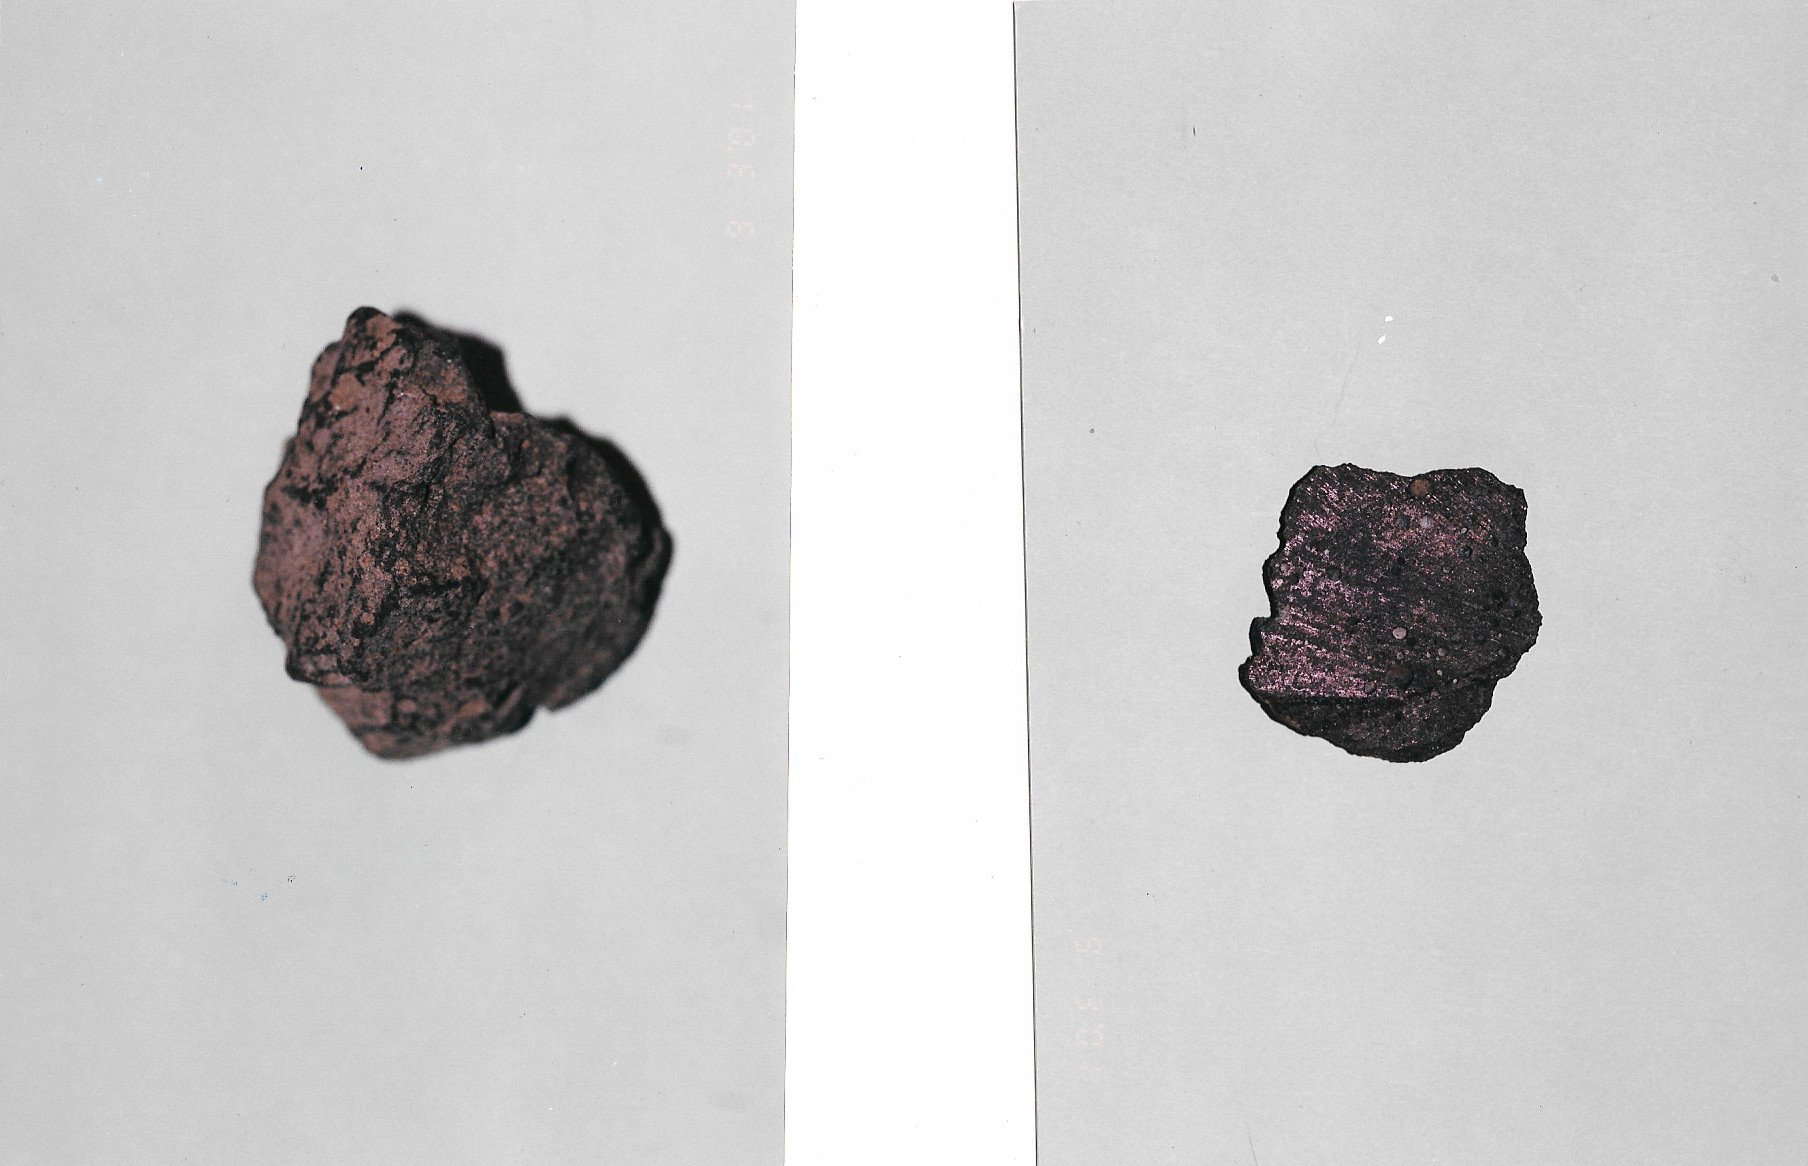 The image on the right is the inside surface of the smaller core sample.  The image on the left is the outer surface of the larger core sample.  There is a faint reddish glow.